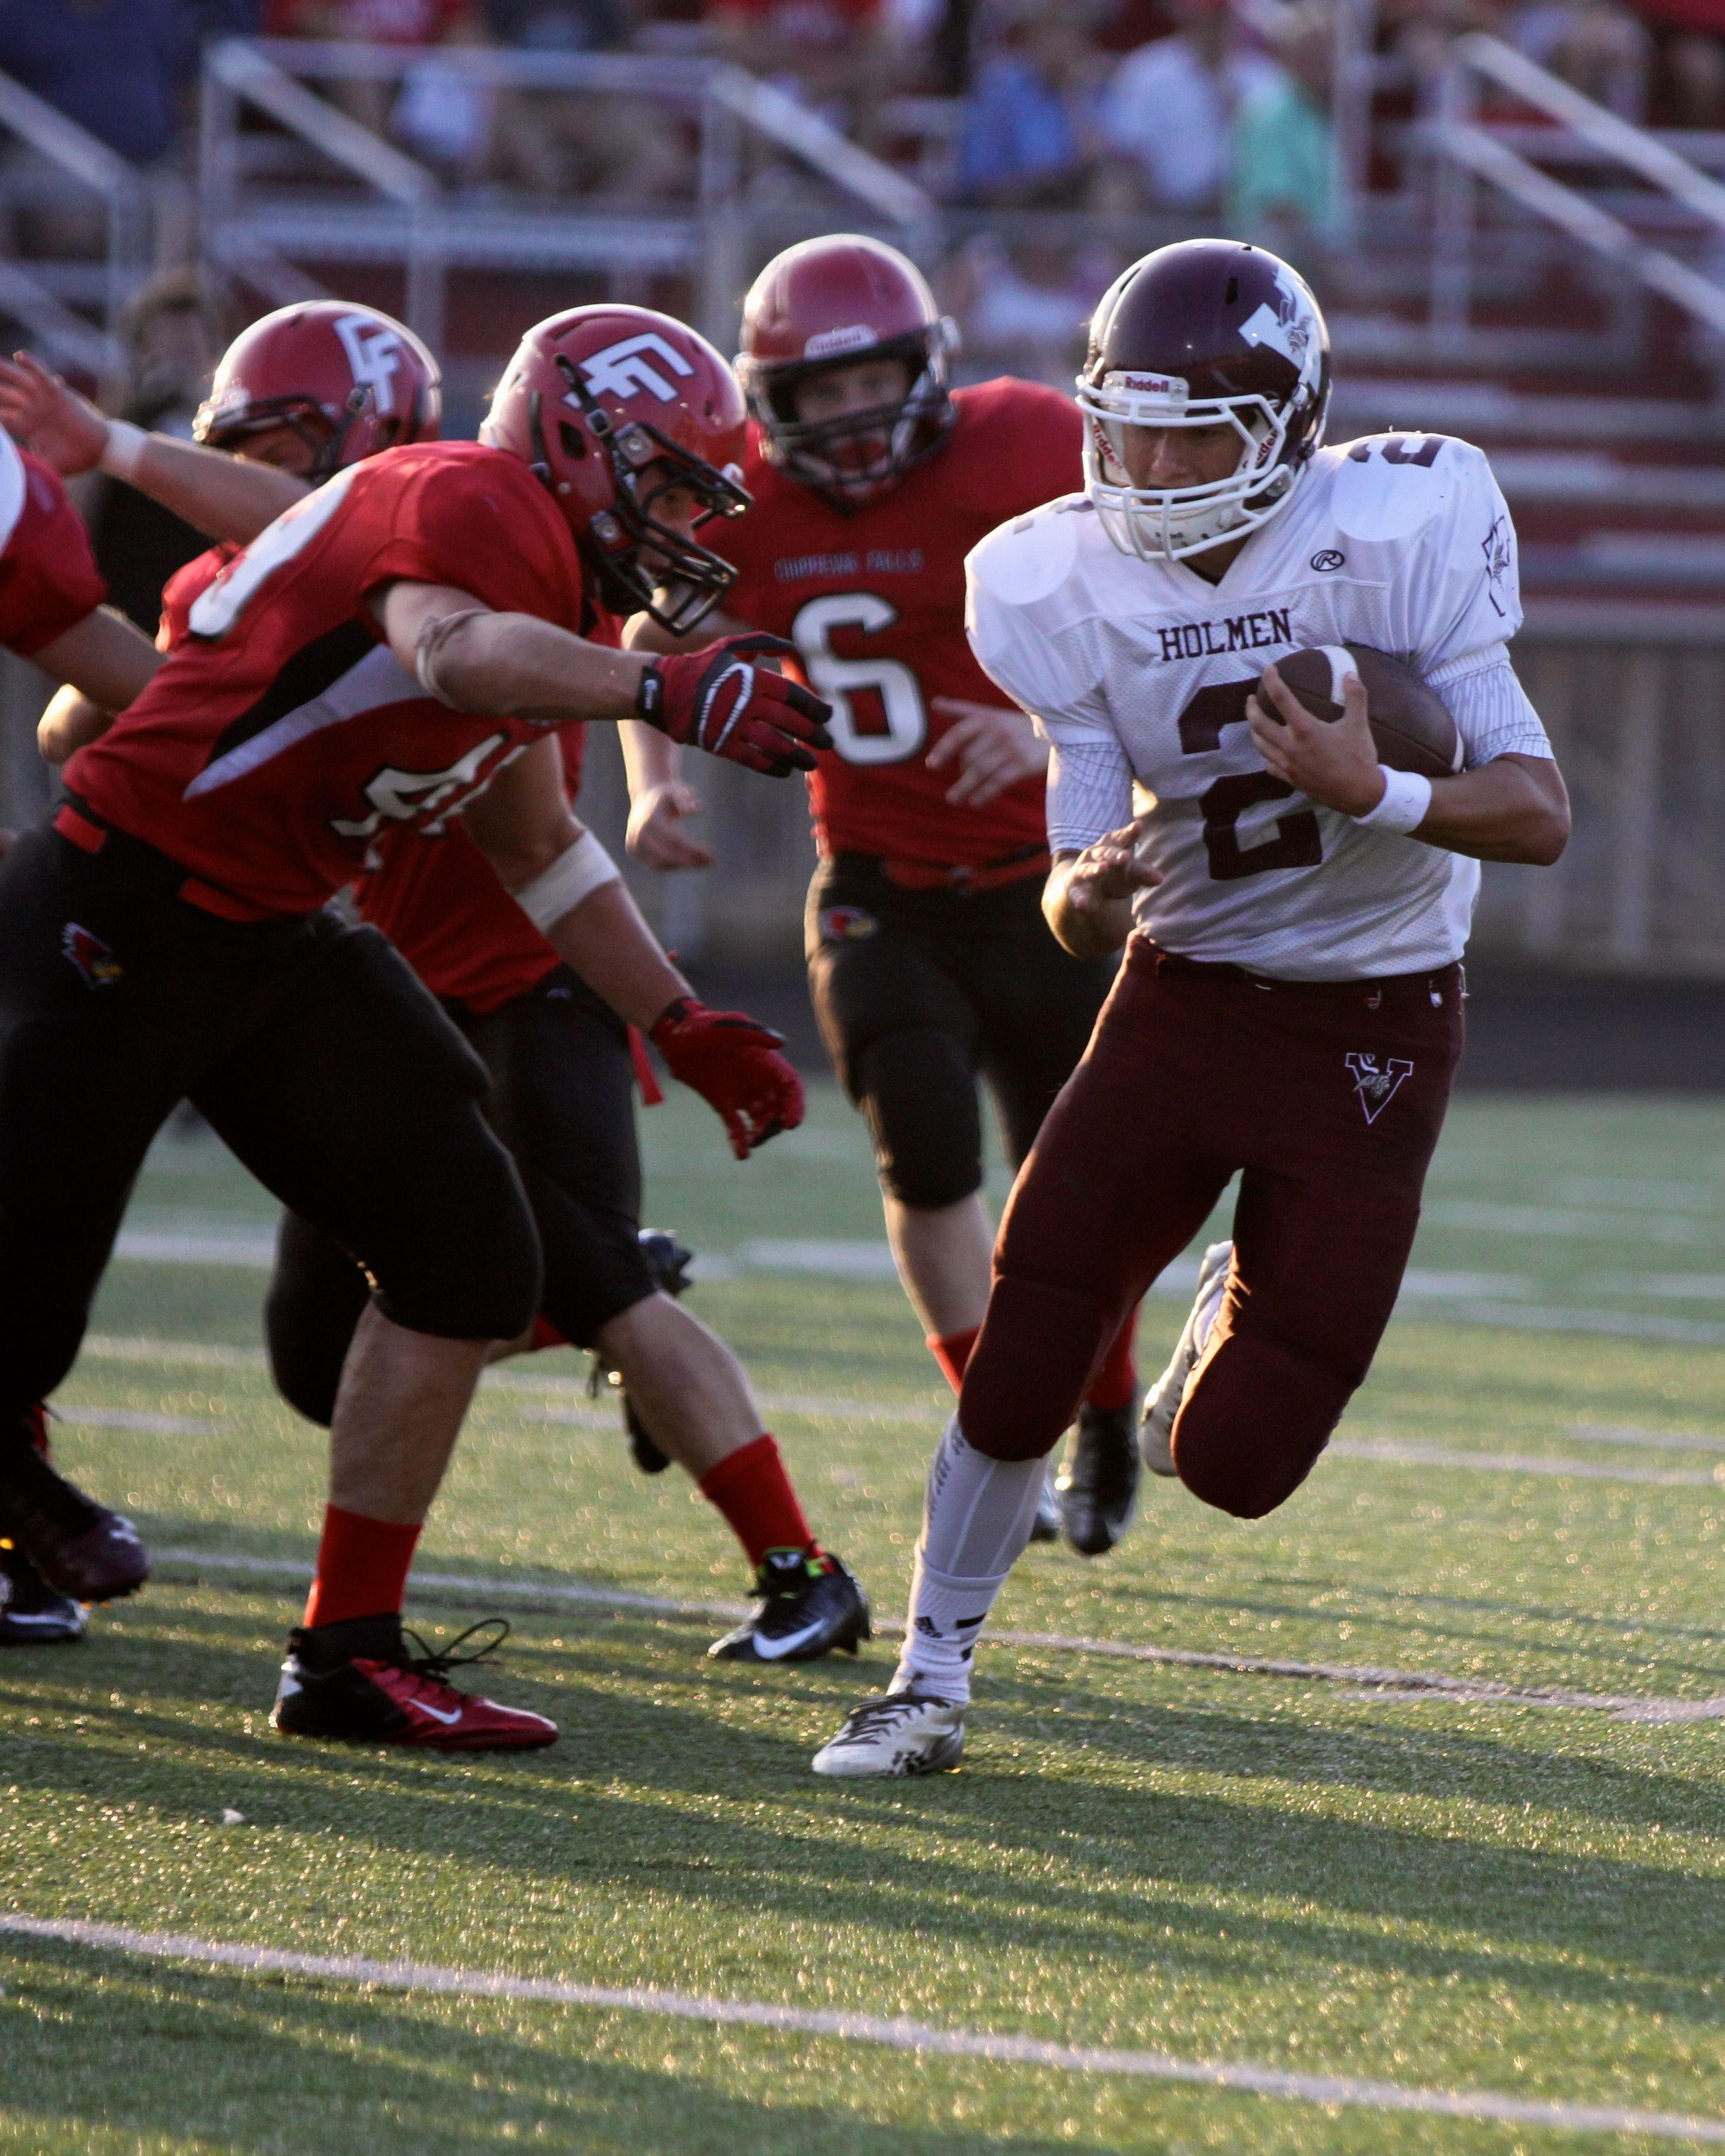 Holmen QB Zimmerman bounces one outside. Photo by Carrie Bergum.